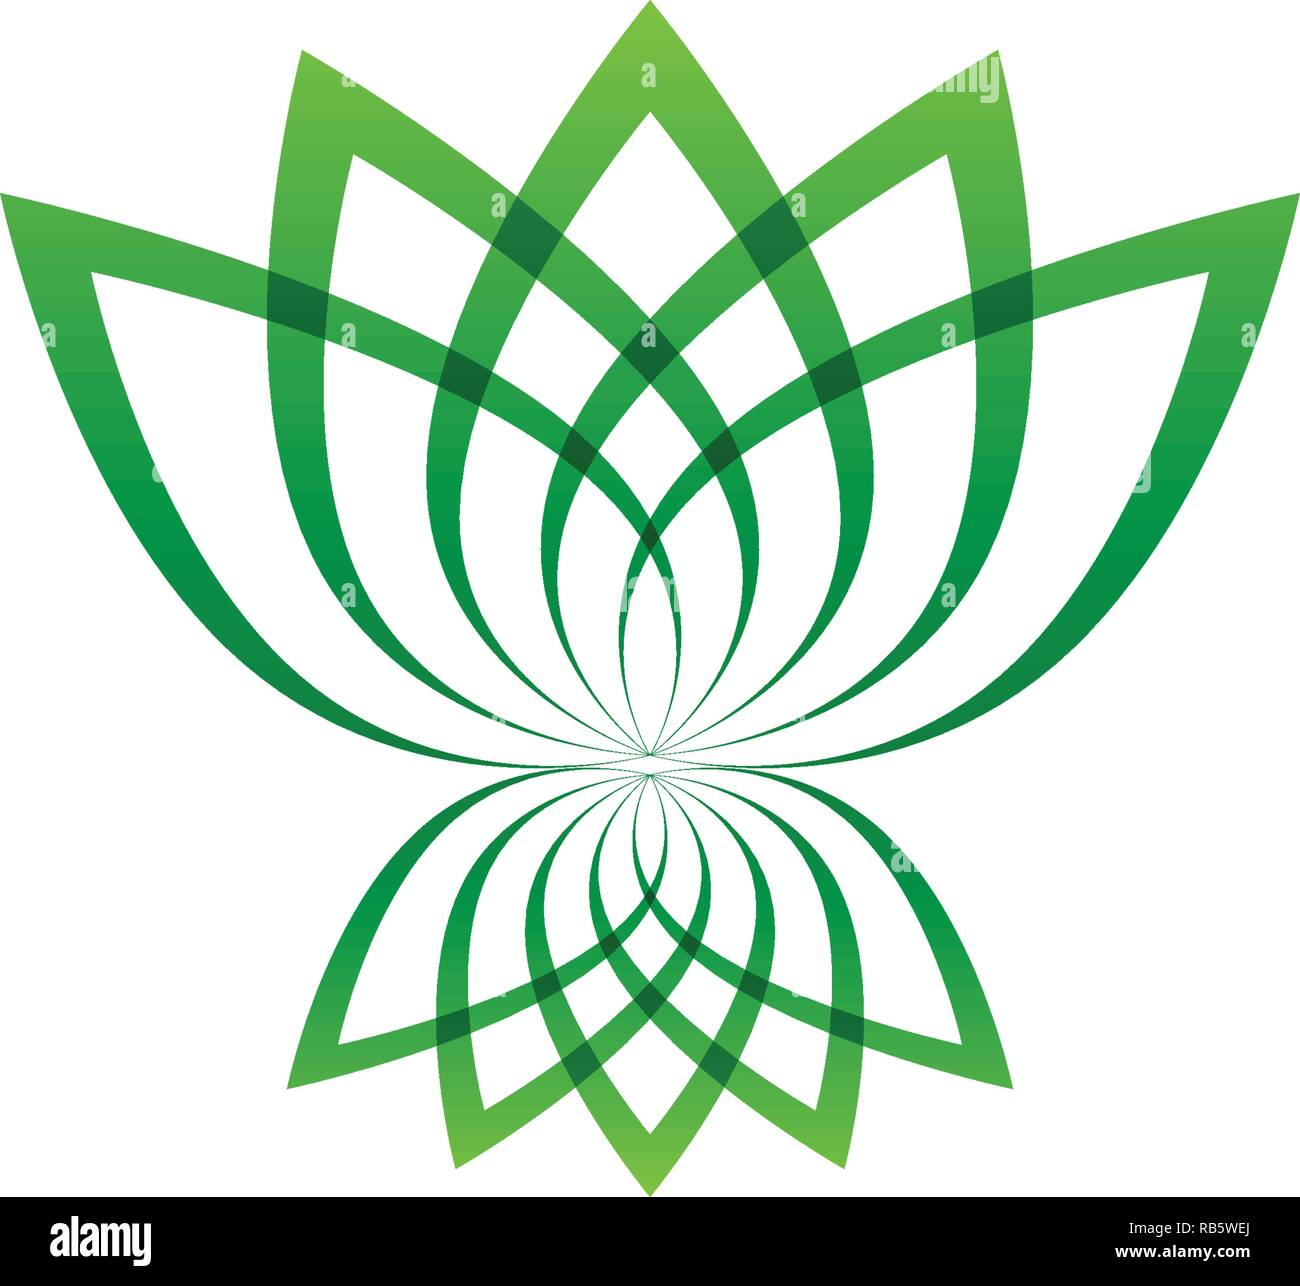 Lotus Flower Logo And Symbols Vector Template Icons Stock Vector Art